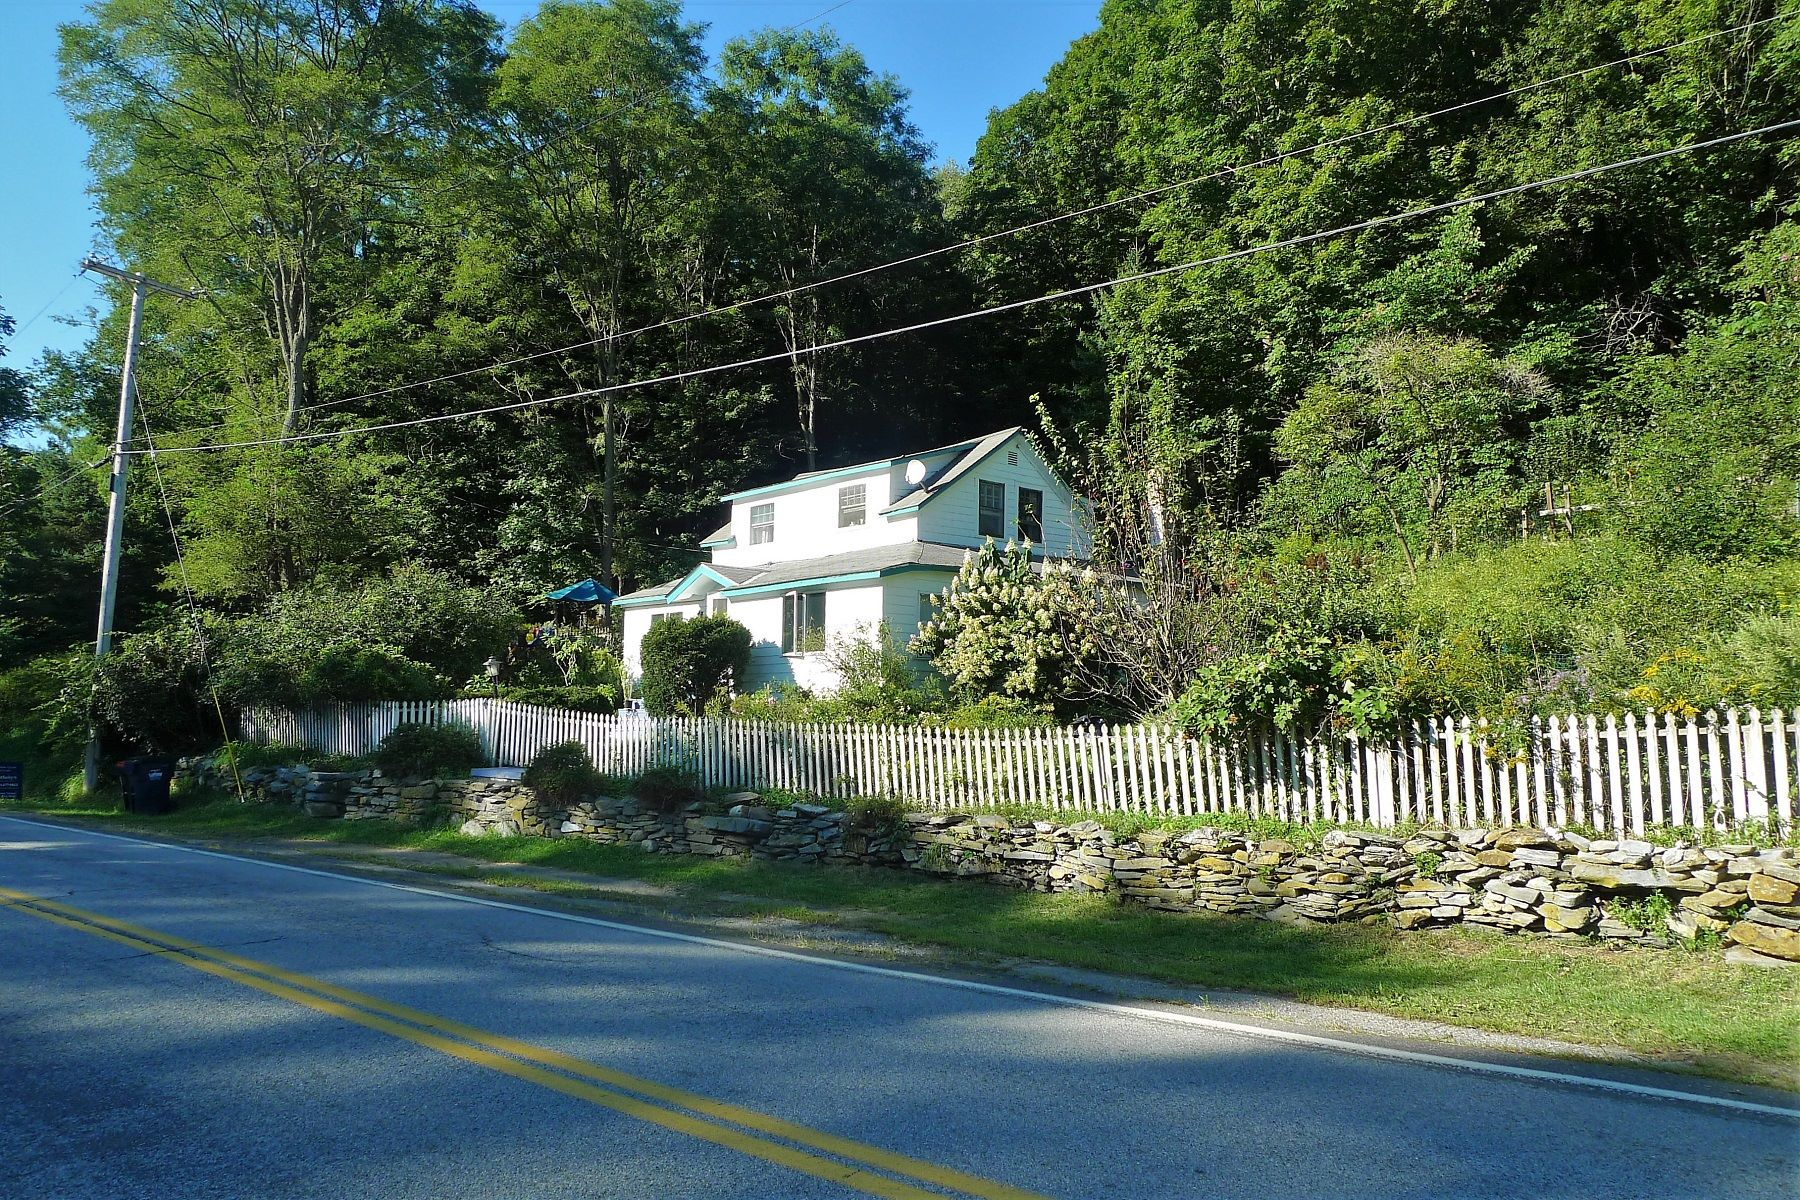 Single Family Home for Sale at Storybook Setting 846 Route 83 Amenia, New York 12501 United States